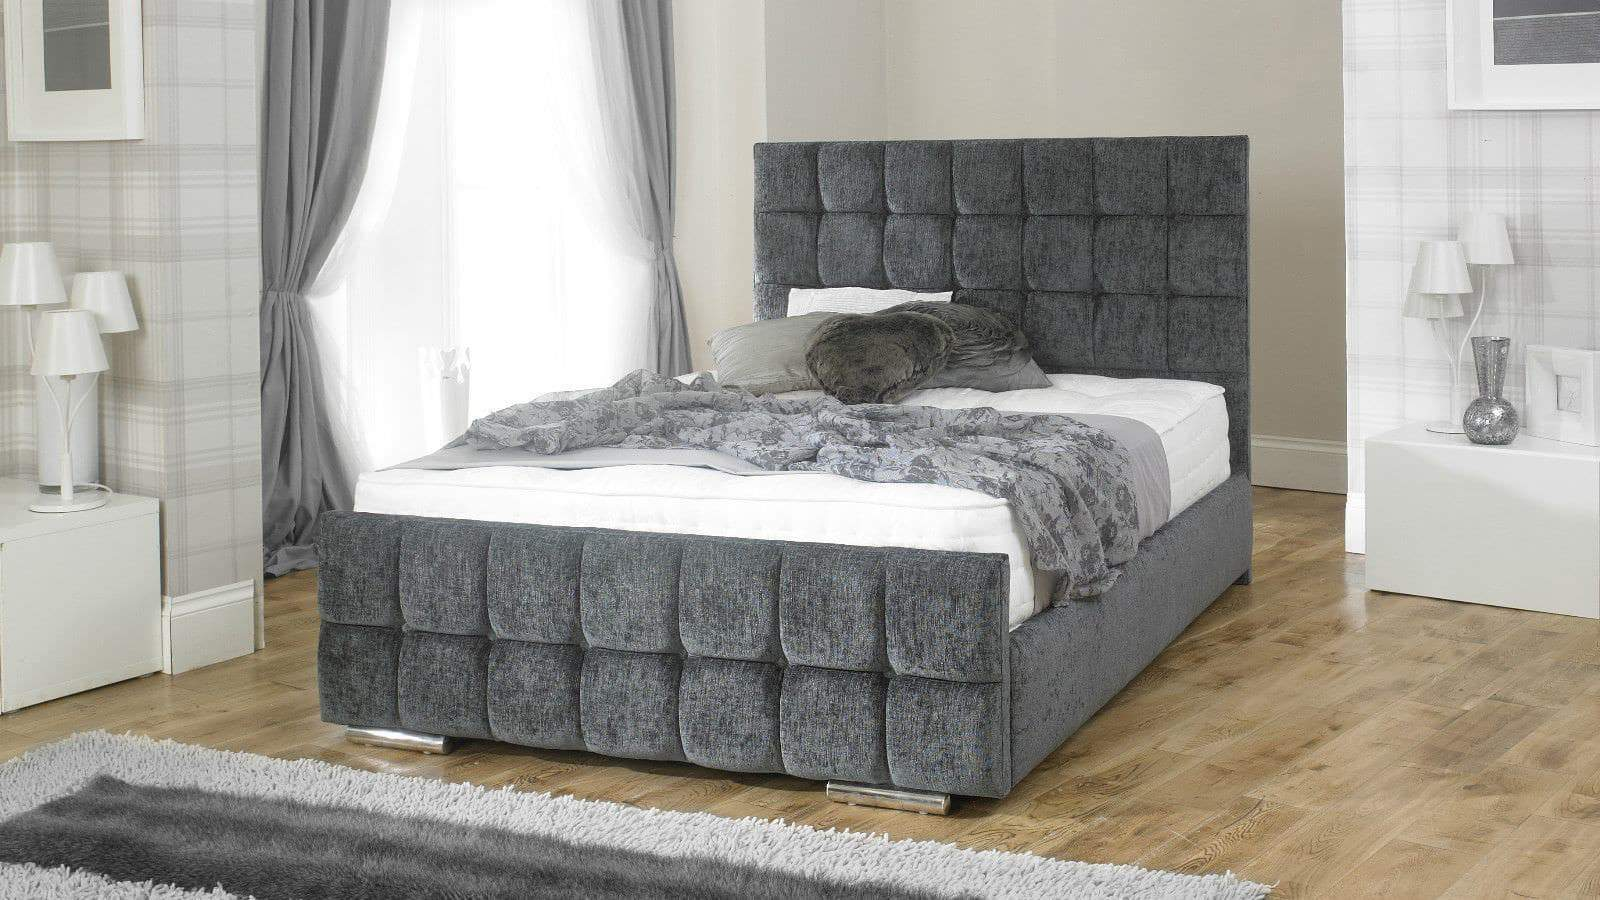 The Cube Bed Hugo Amp Sons Bedroom Furniture